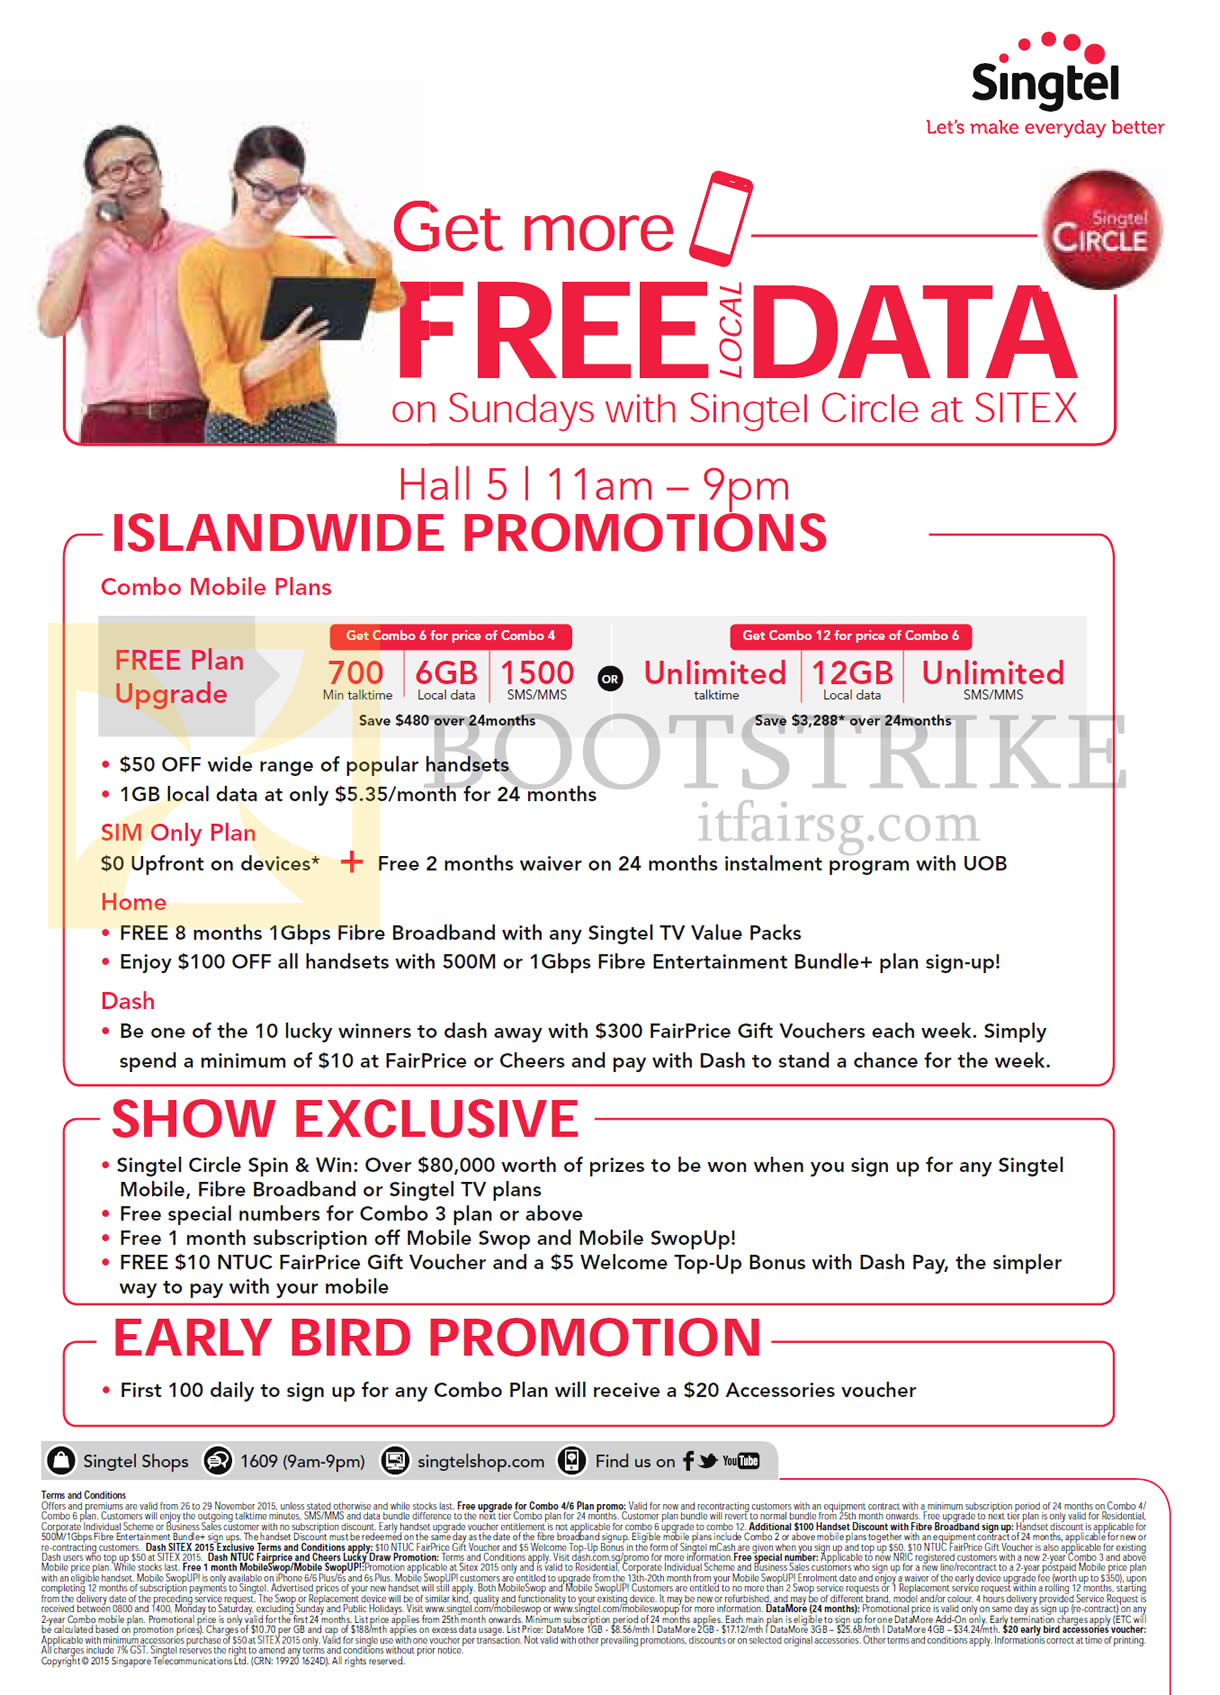 SITEX 2015 price list image brochure of Singtel Islandwide Promotions, Show Exclusives, Early Bird Promotions